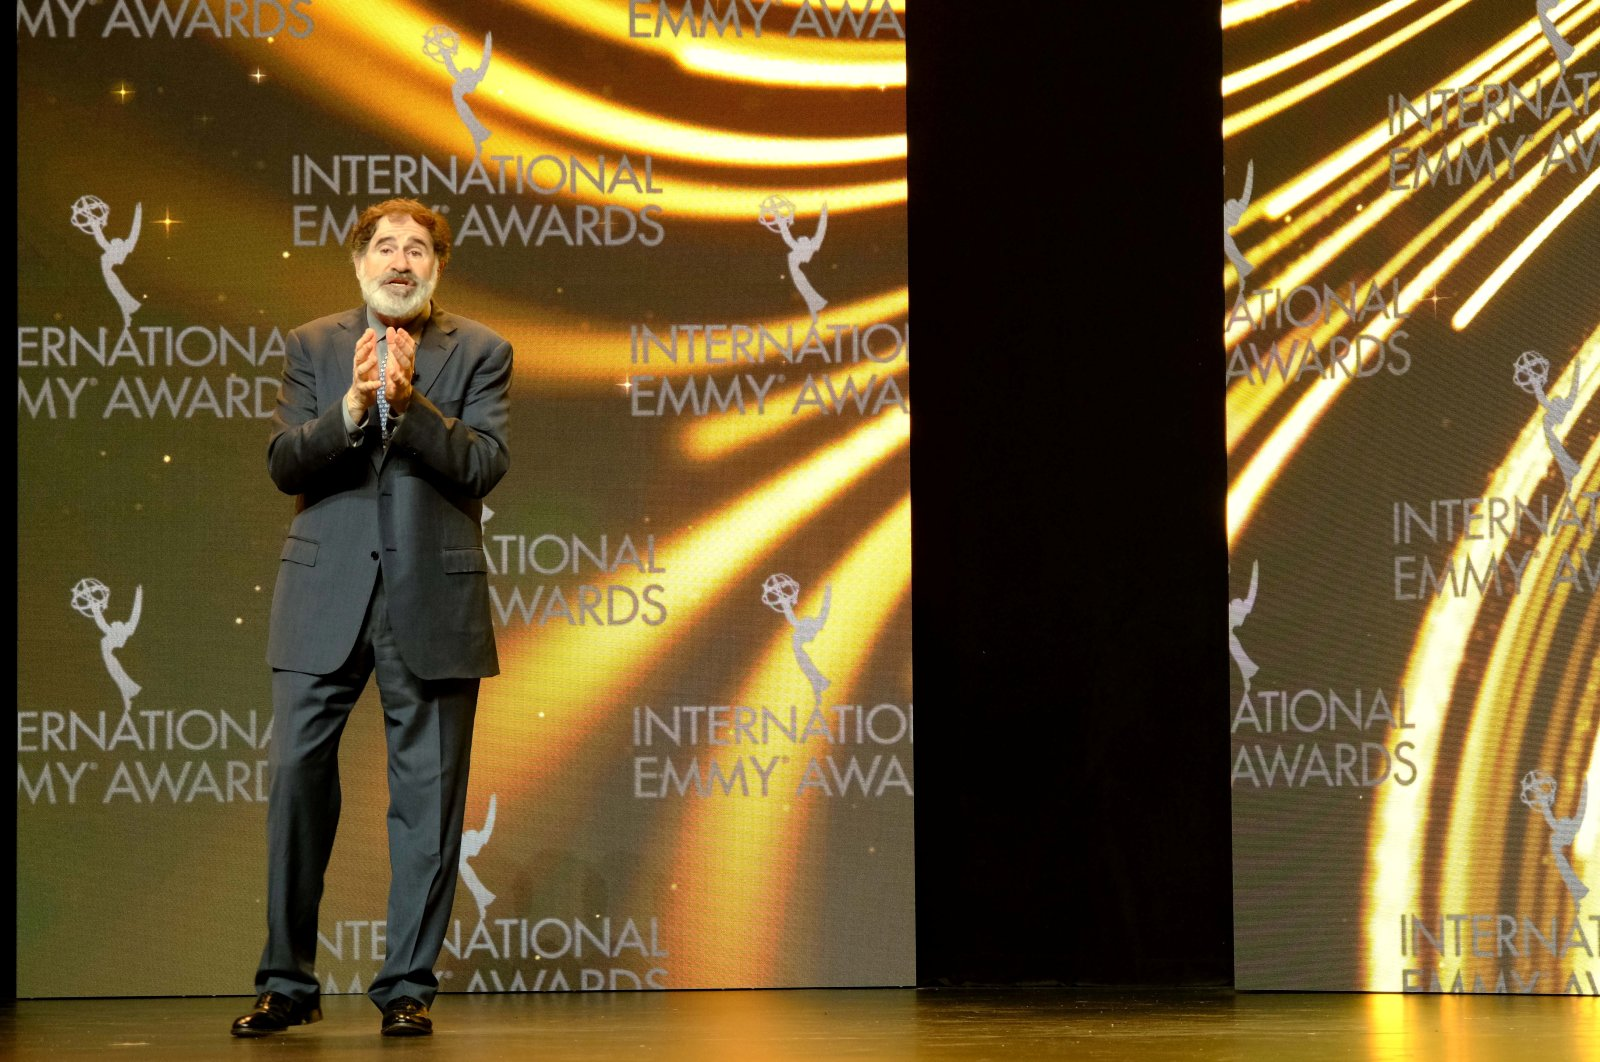 Actor Richard Kind hosts the 48th International Emmy Awards Ceremony, in New York, U.S., Nov. 23, 2020. (REUTERS PHOTO)